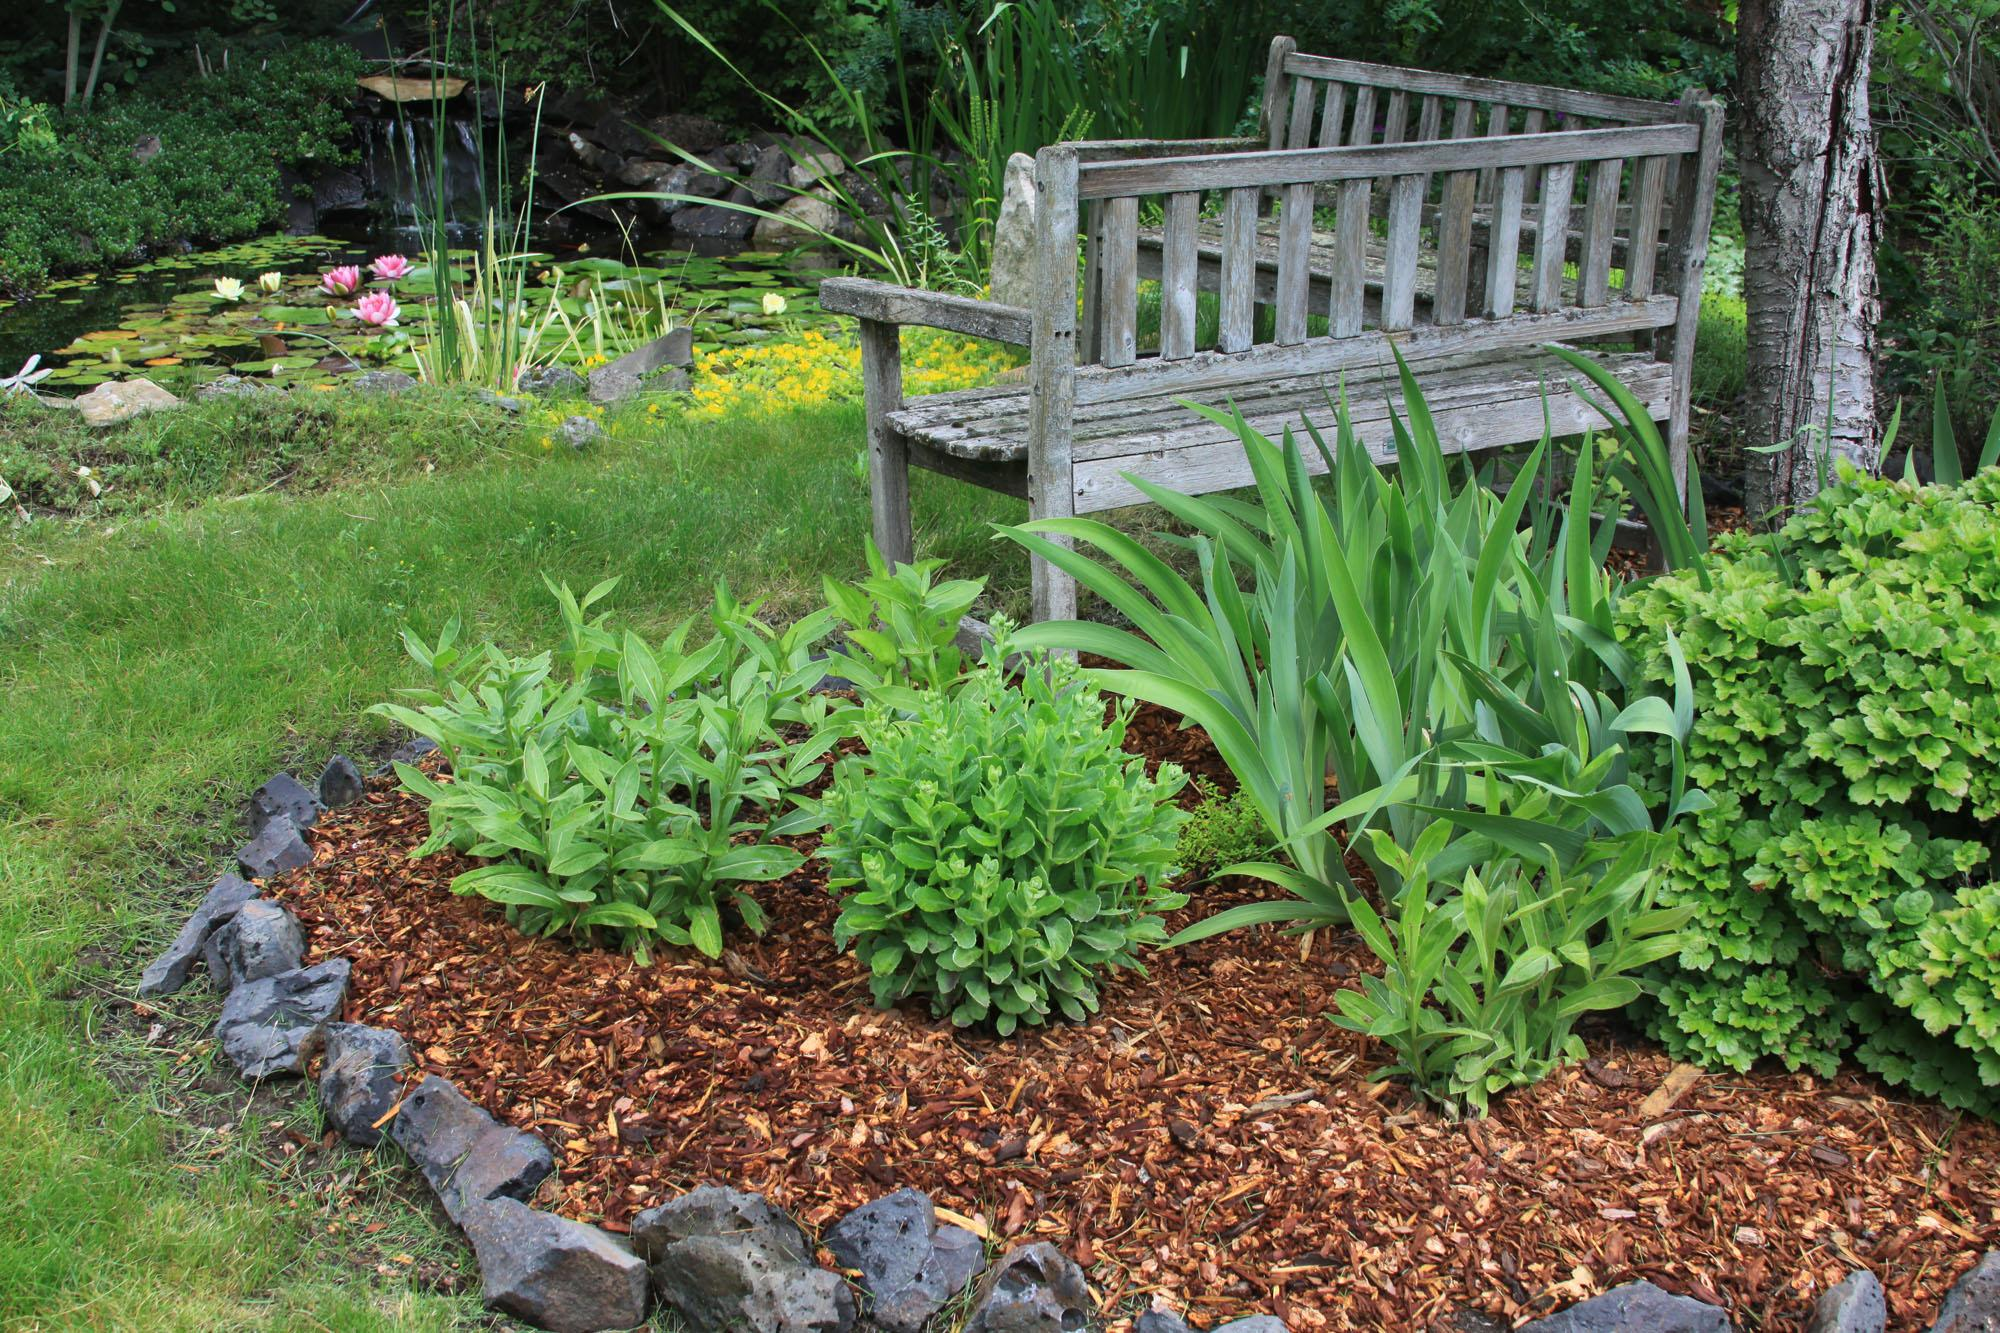 Mulching Around Plants With Bark Mulch Or Lawn Clippings Cuts Down On Weeding And Helps The